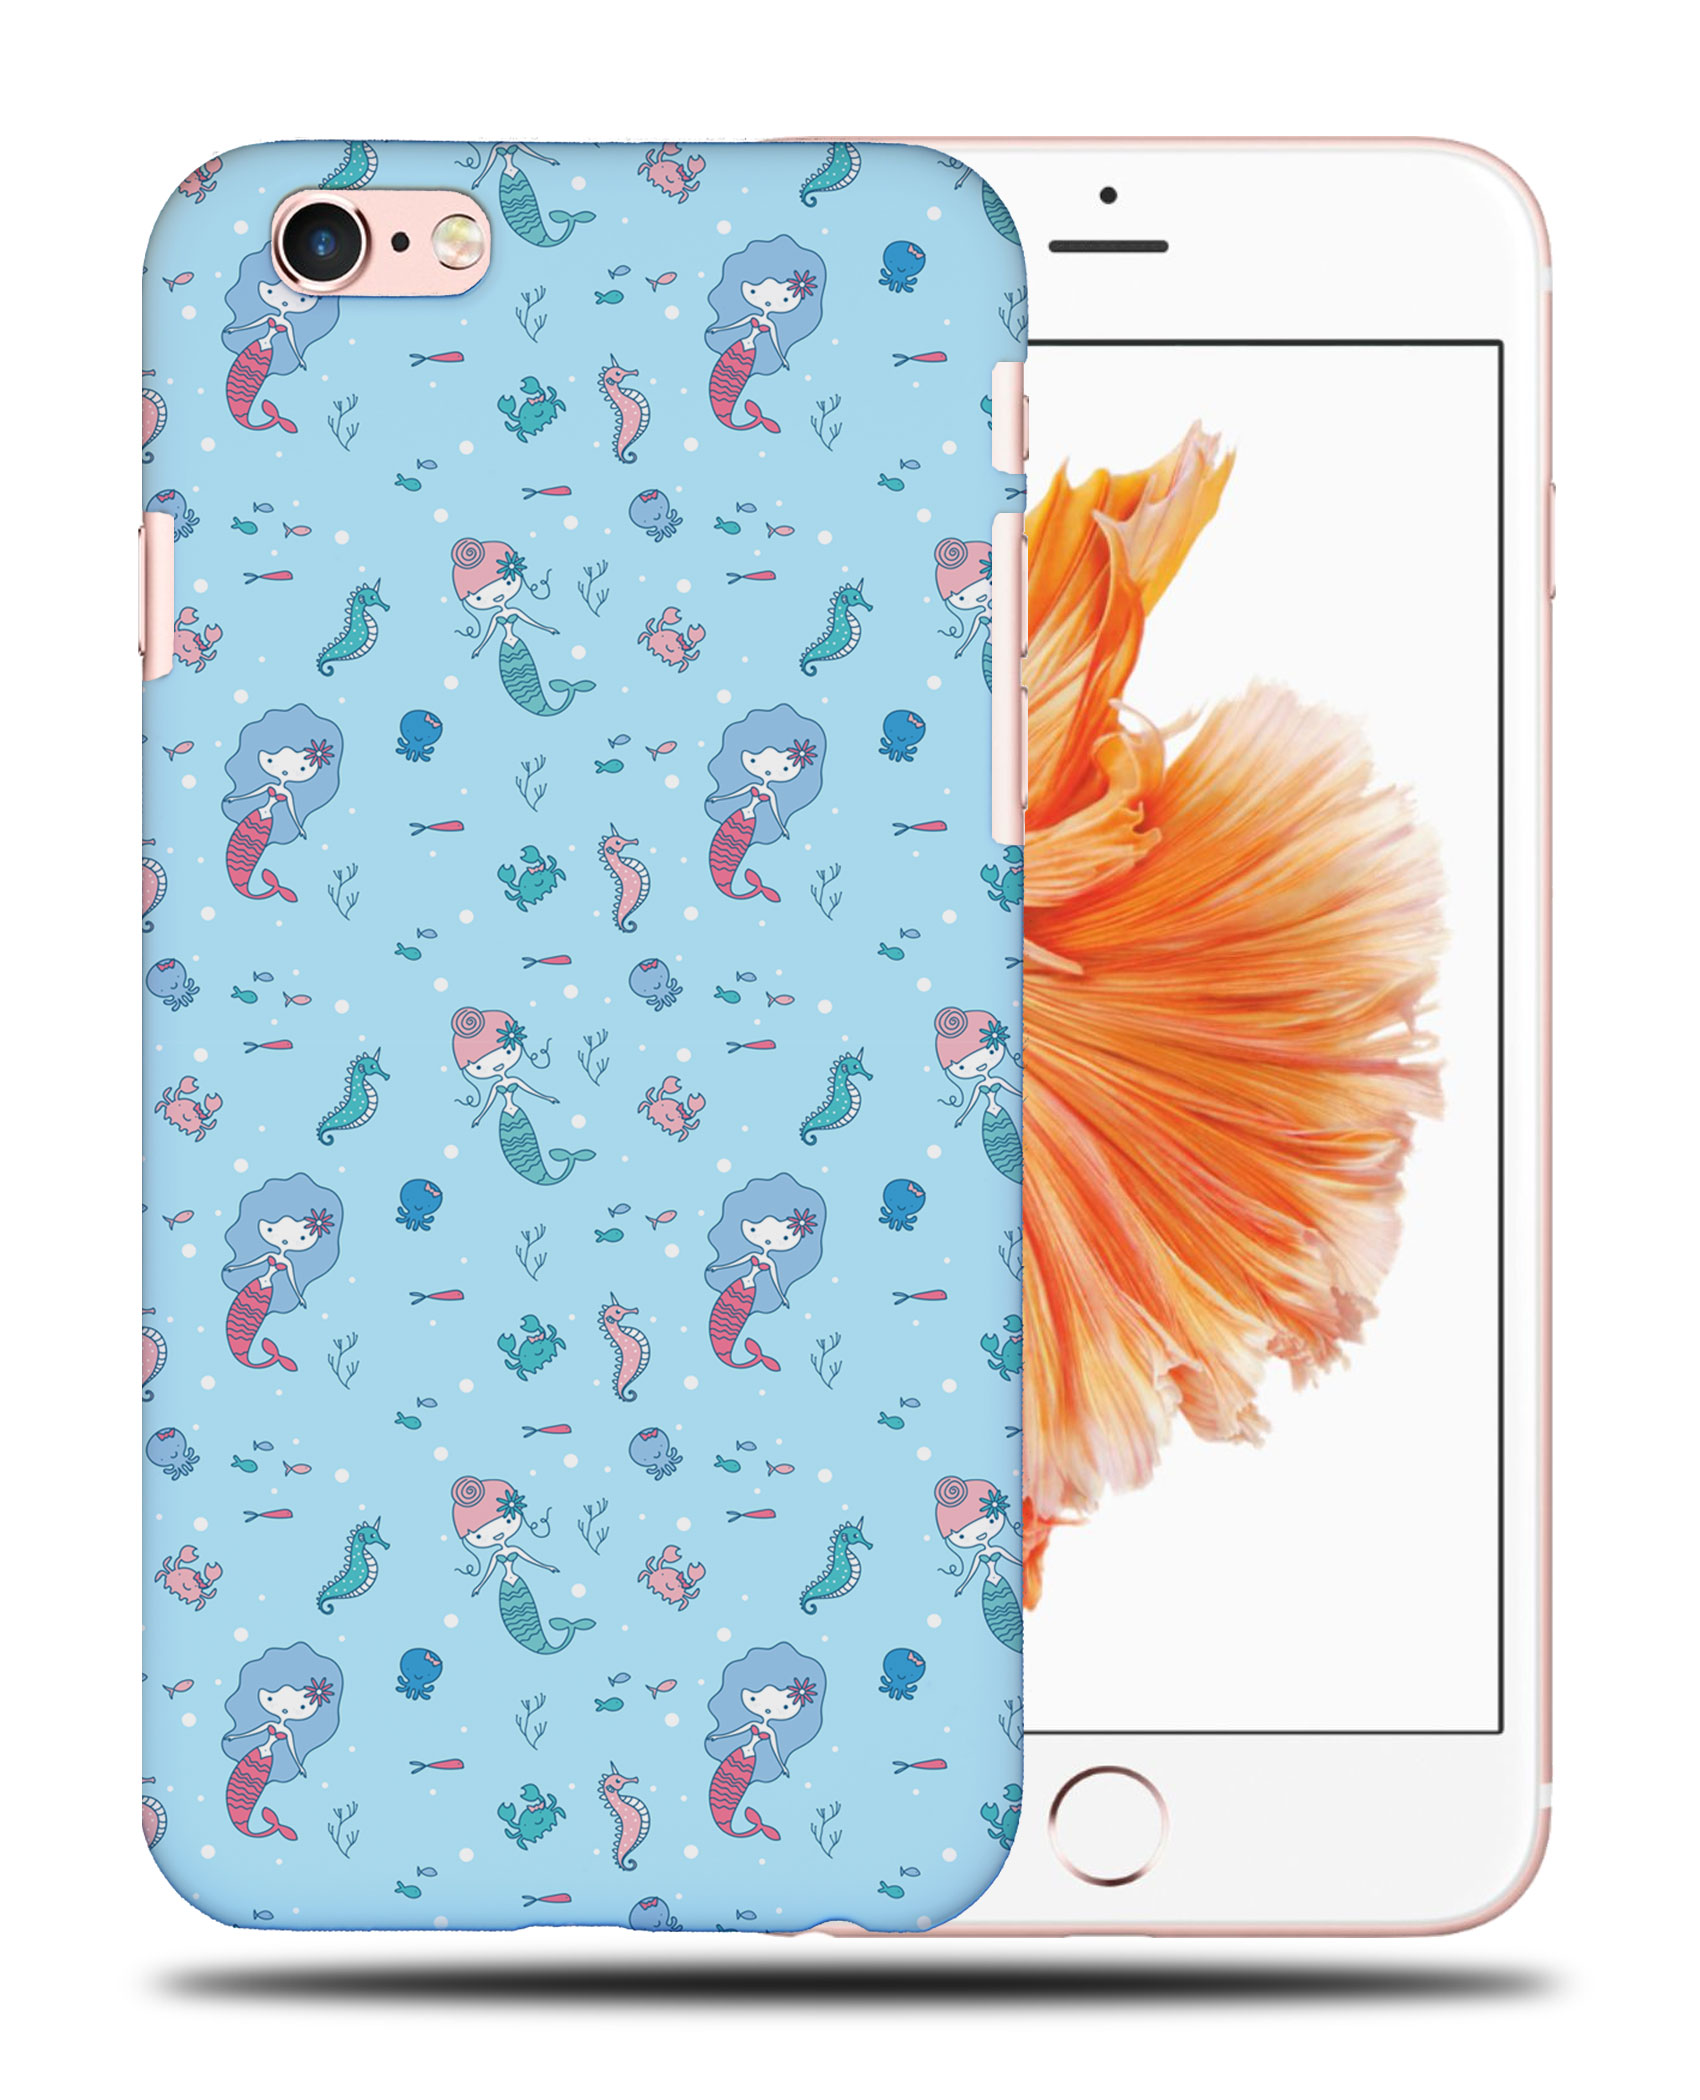 CUTE-RABBIT-BUNNY-32-CASE-IPHONE-4-4S-5-5C-5S-SE-6-6S-7-8-X-PLUS